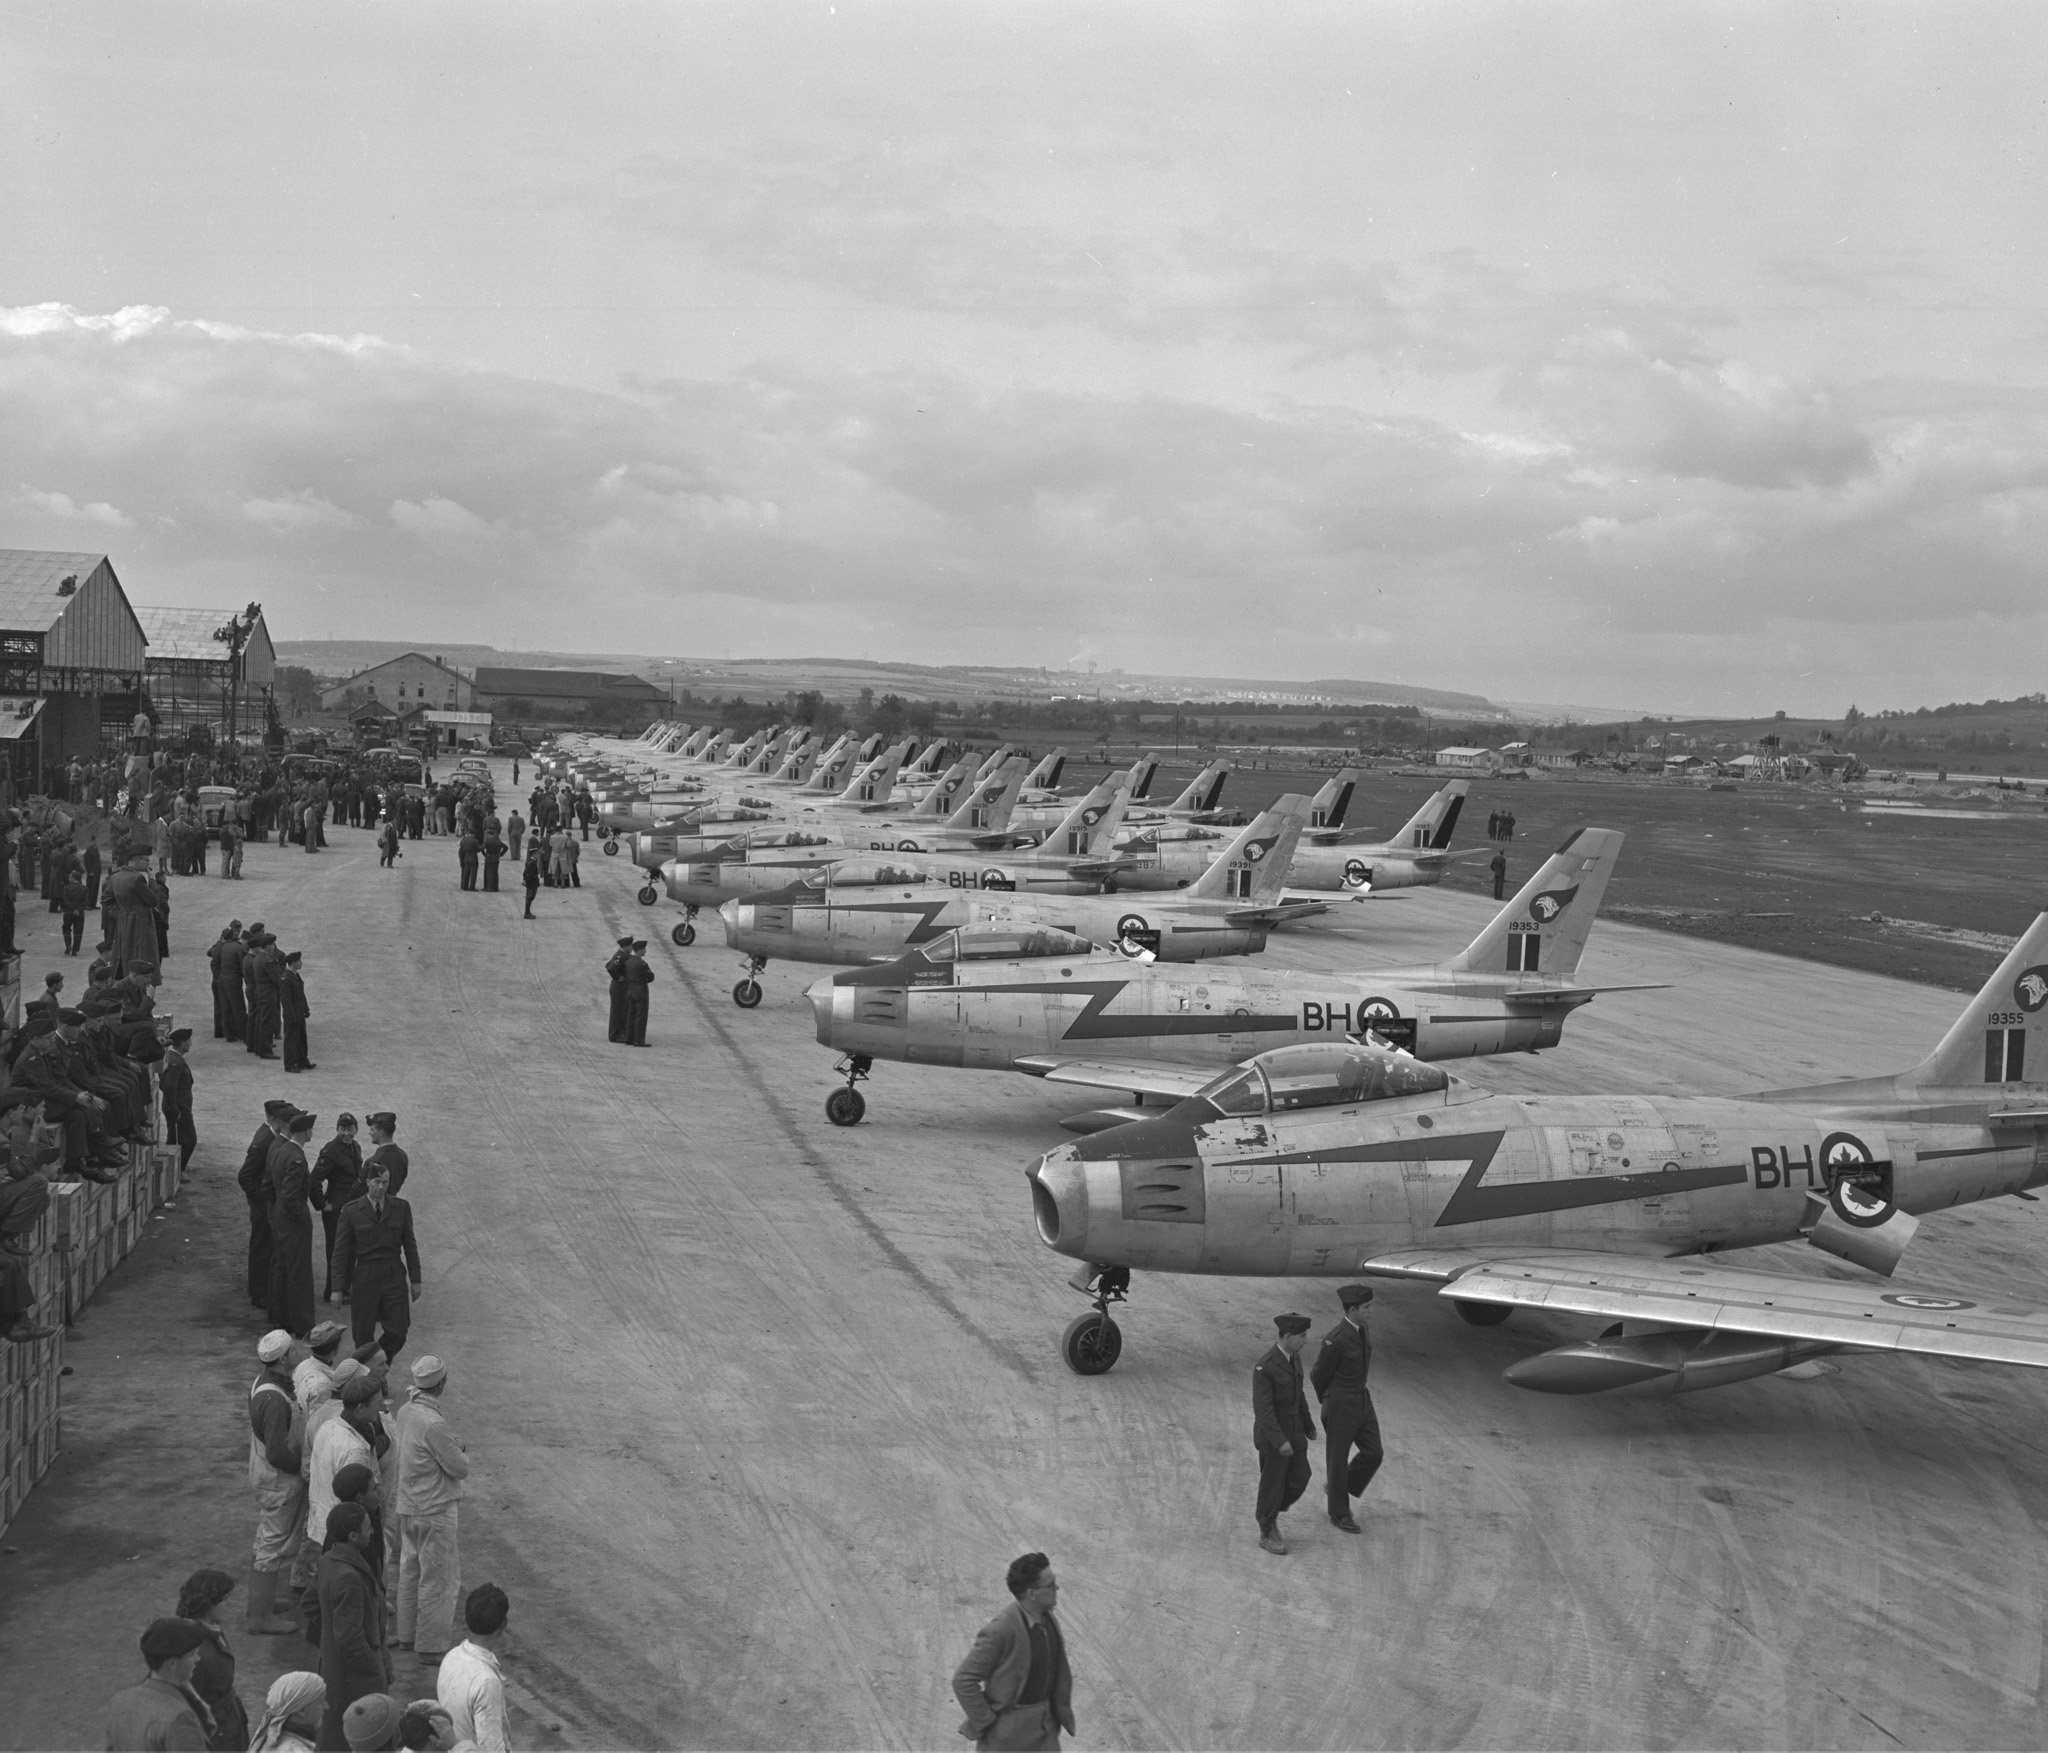 A view of the arrival of No. 2 (Fighter) Wing at Grostenquin, France. Two squadrons have landed and the crowd awaits the arrival of the third. PHOTO: DND Archives, PL-62570